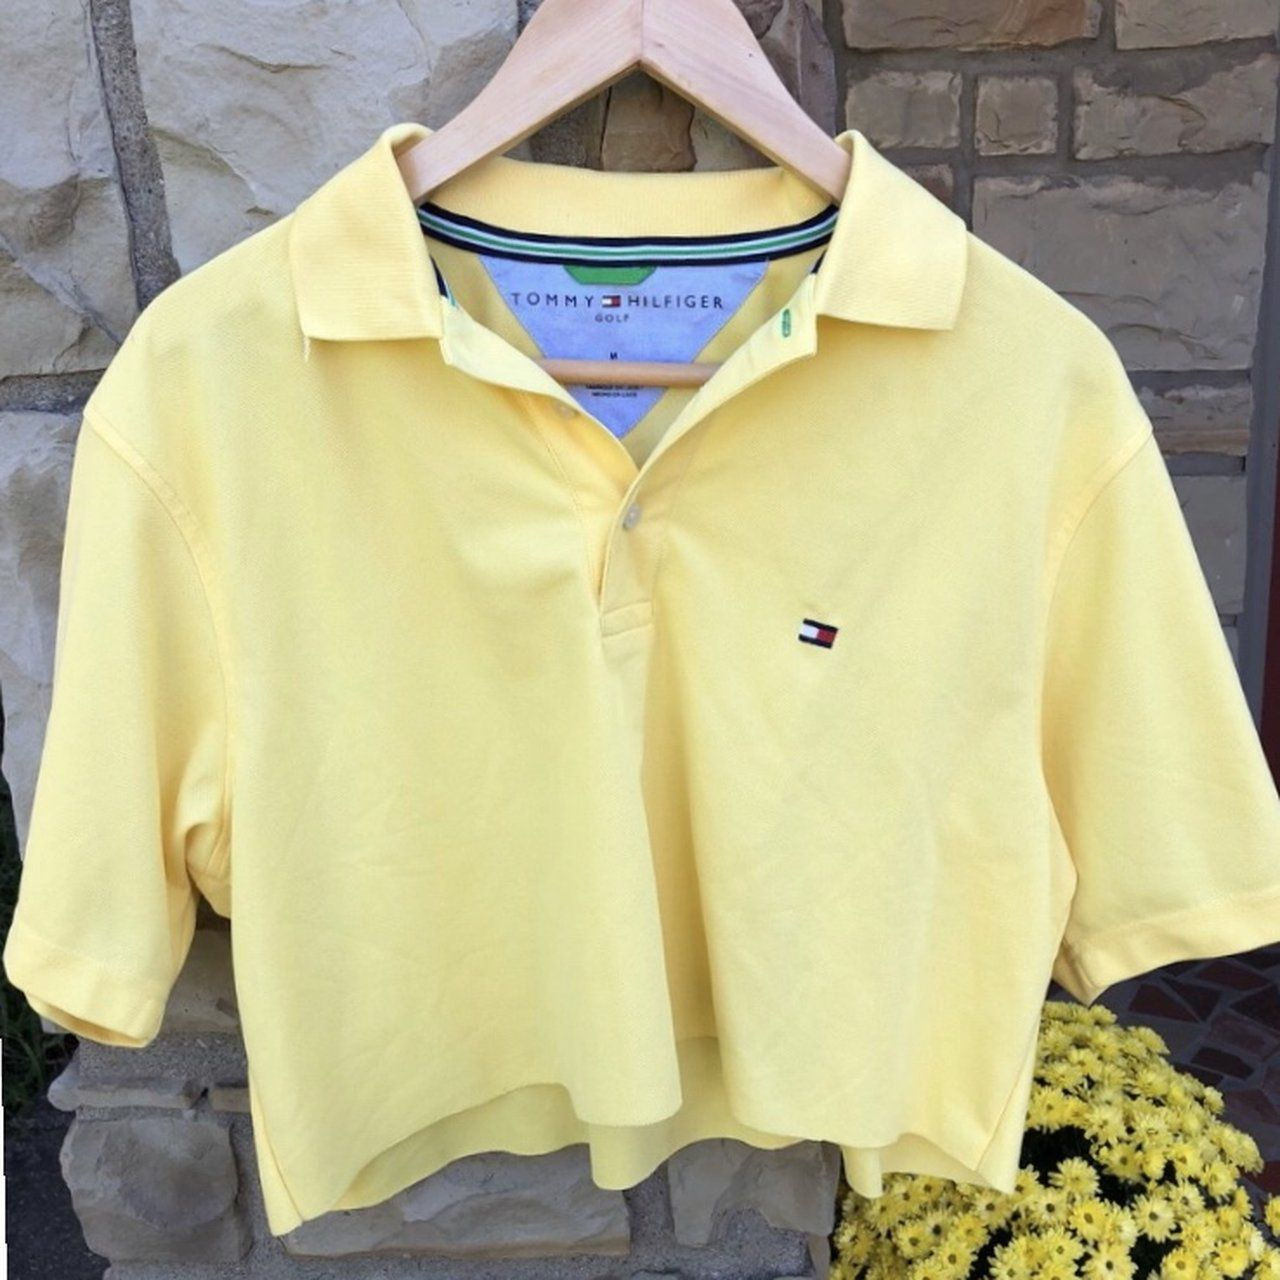 tommy hilfiger slight cropped polo shirt ~no flaws ~emma to - Depop e5a6e3f15